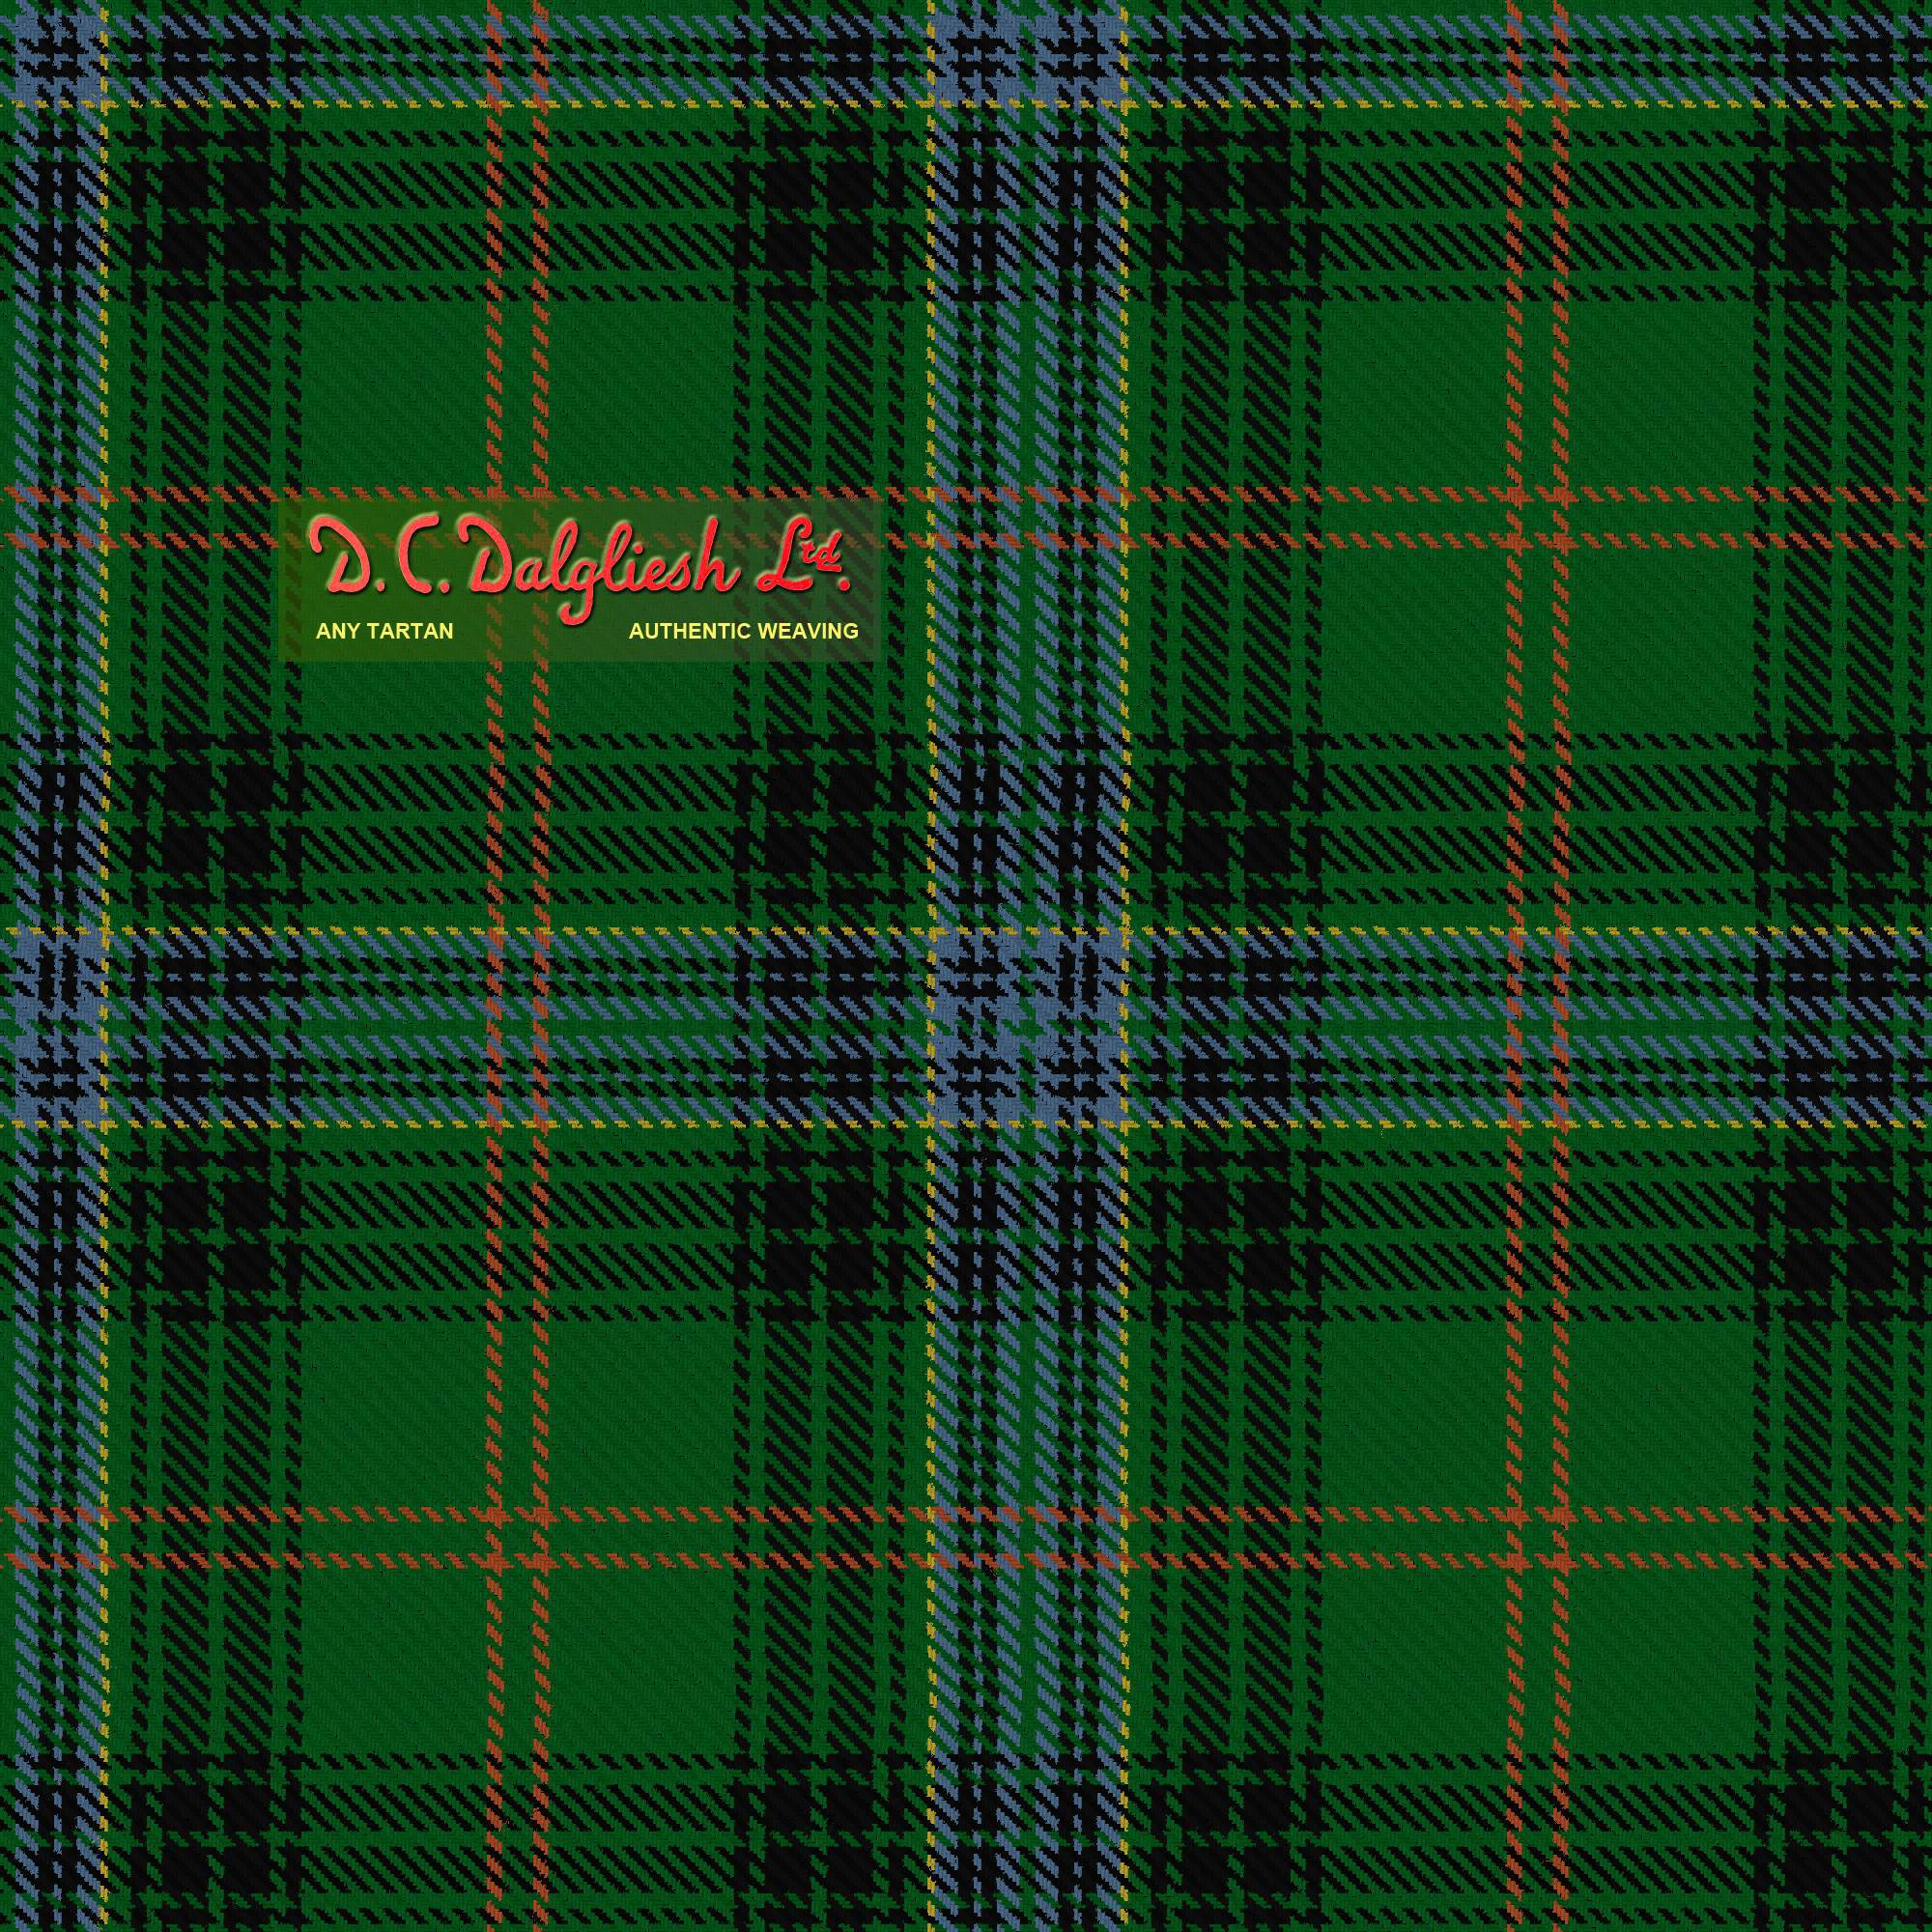 Hyslop Fabric By Dc Dalgliesh Hand Crafted Tartans